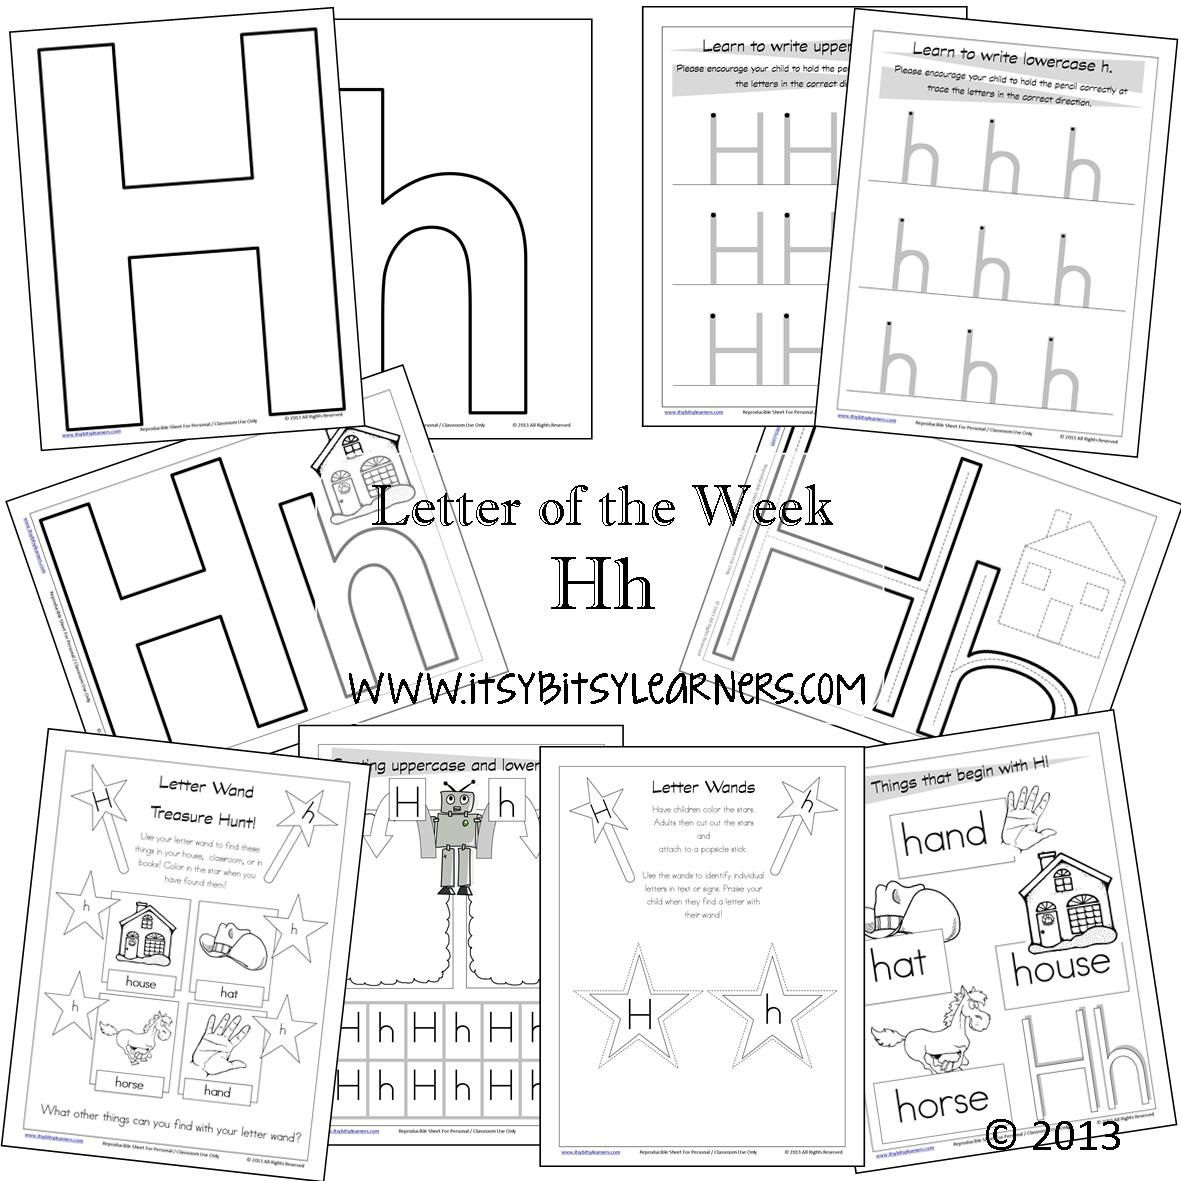 Letter Of The Week Printables Available Free At Itsybitsylearners Abcs 123s